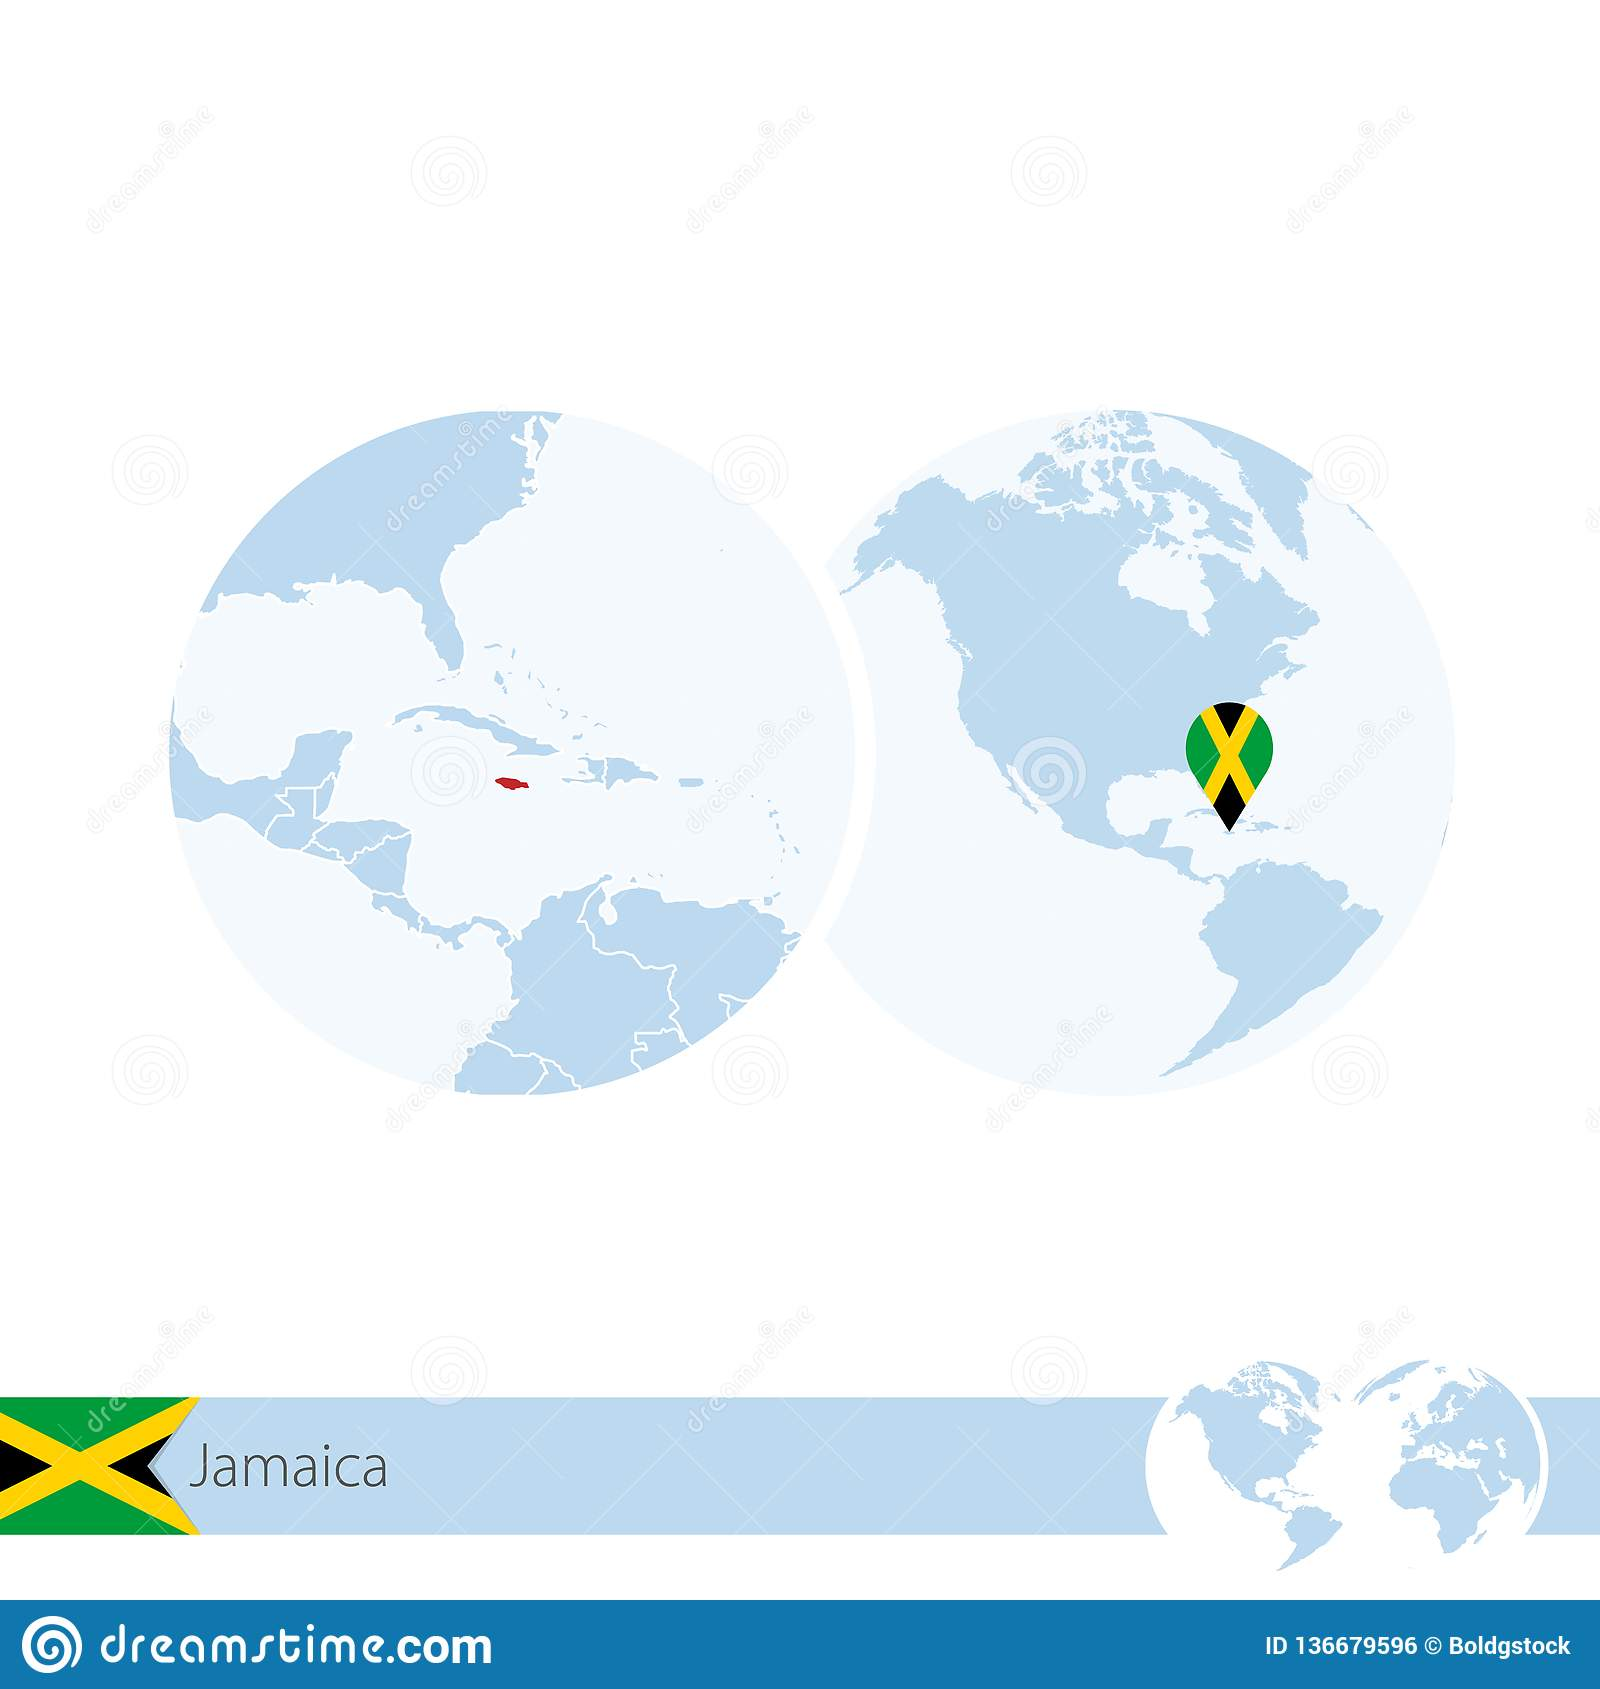 Jamaica On World Globe With Flag And Regional Map Of Jamaica ...